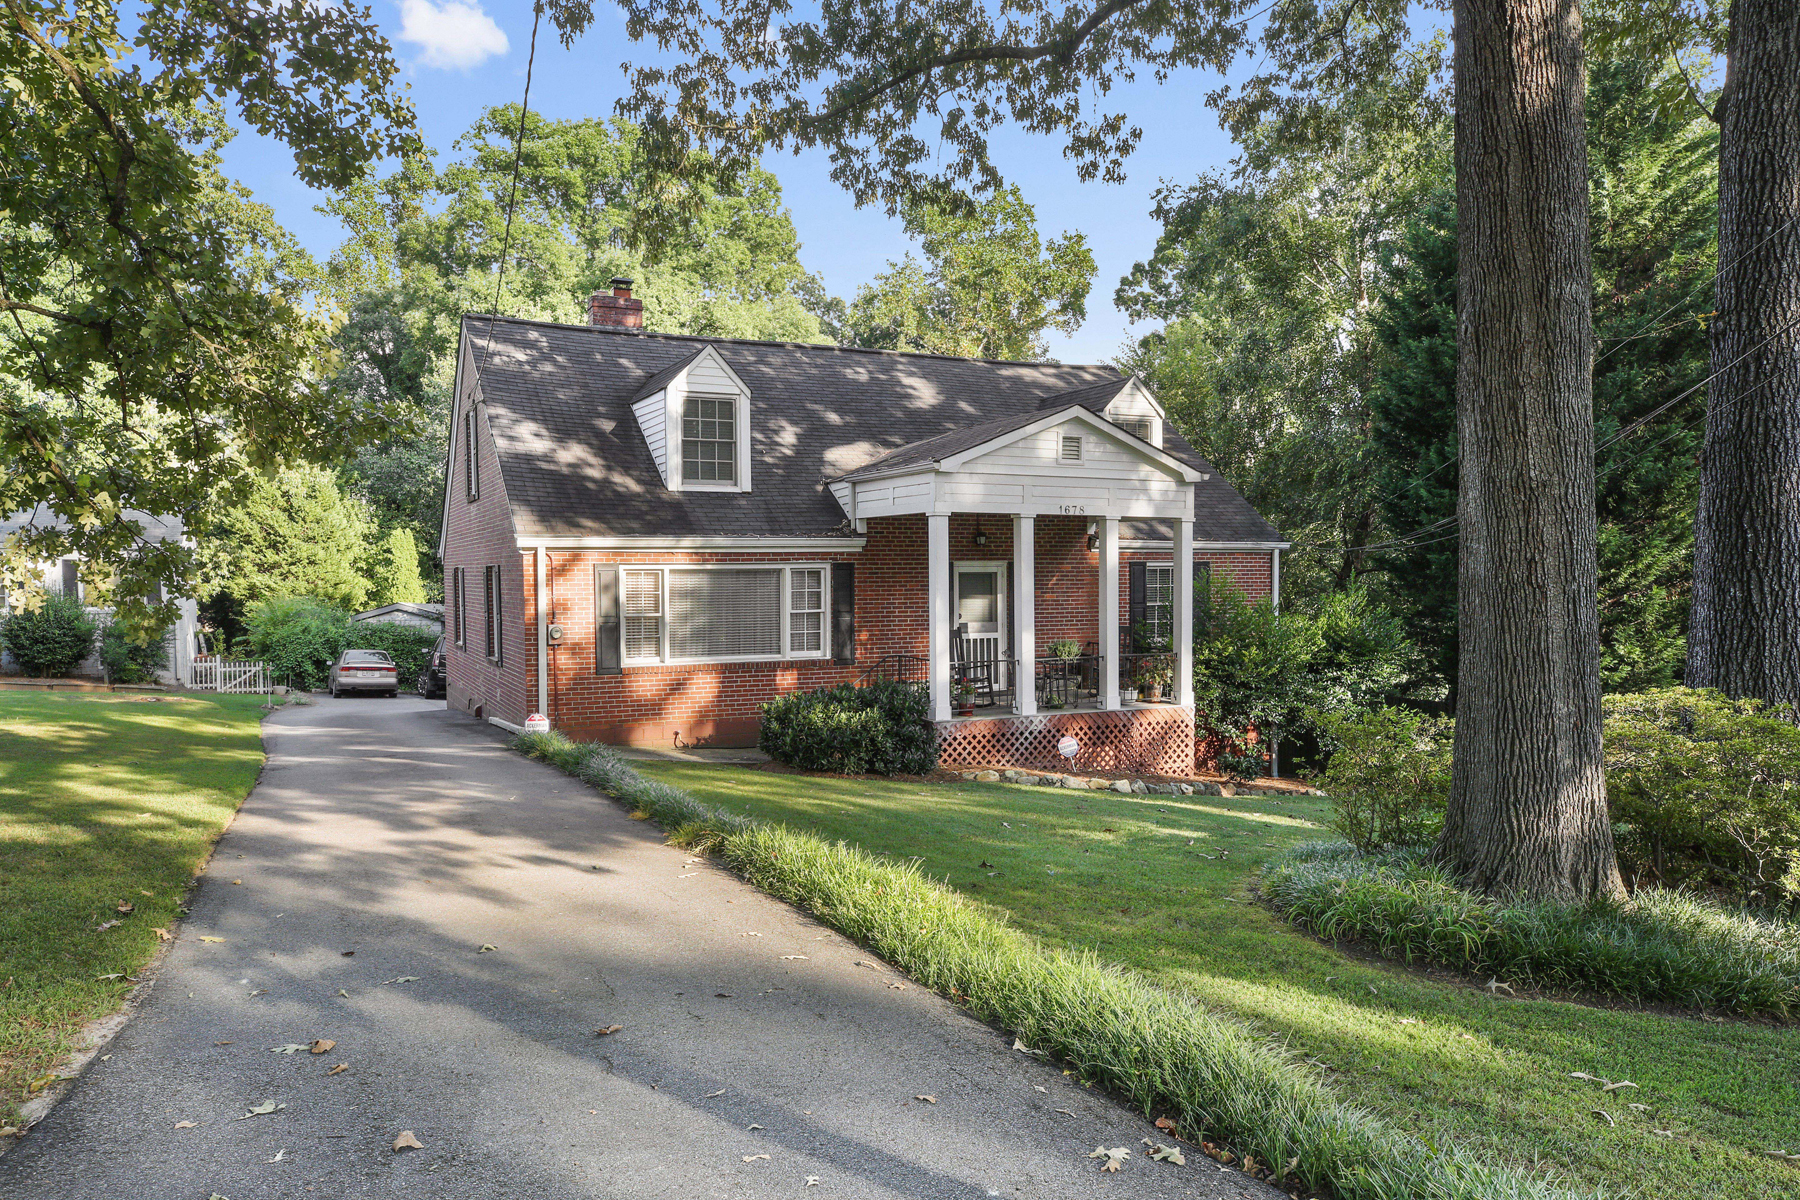 Single Family Home for Sale at Spacious Brookhaven Beauty With Amazing Backyard! 1678 N Druid Hills Road NE Brookhaven, Georgia 30319 United States